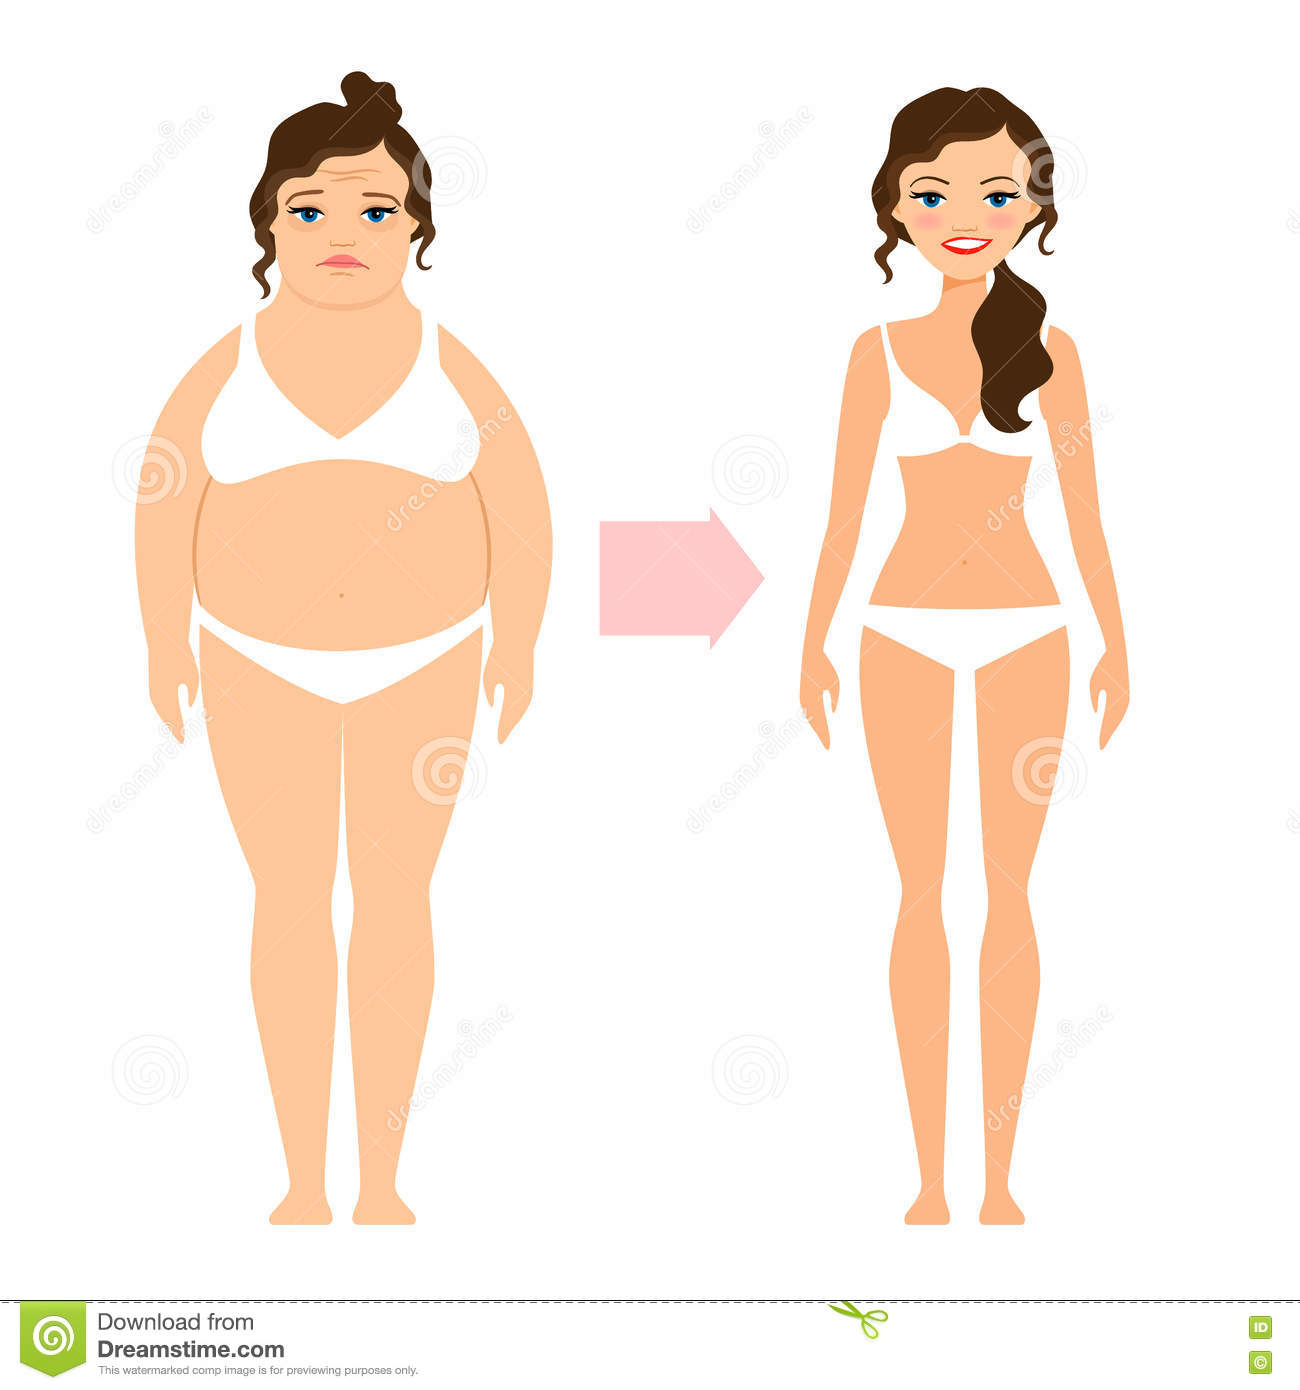 Adventist A And Youre Female? Slim Healthy